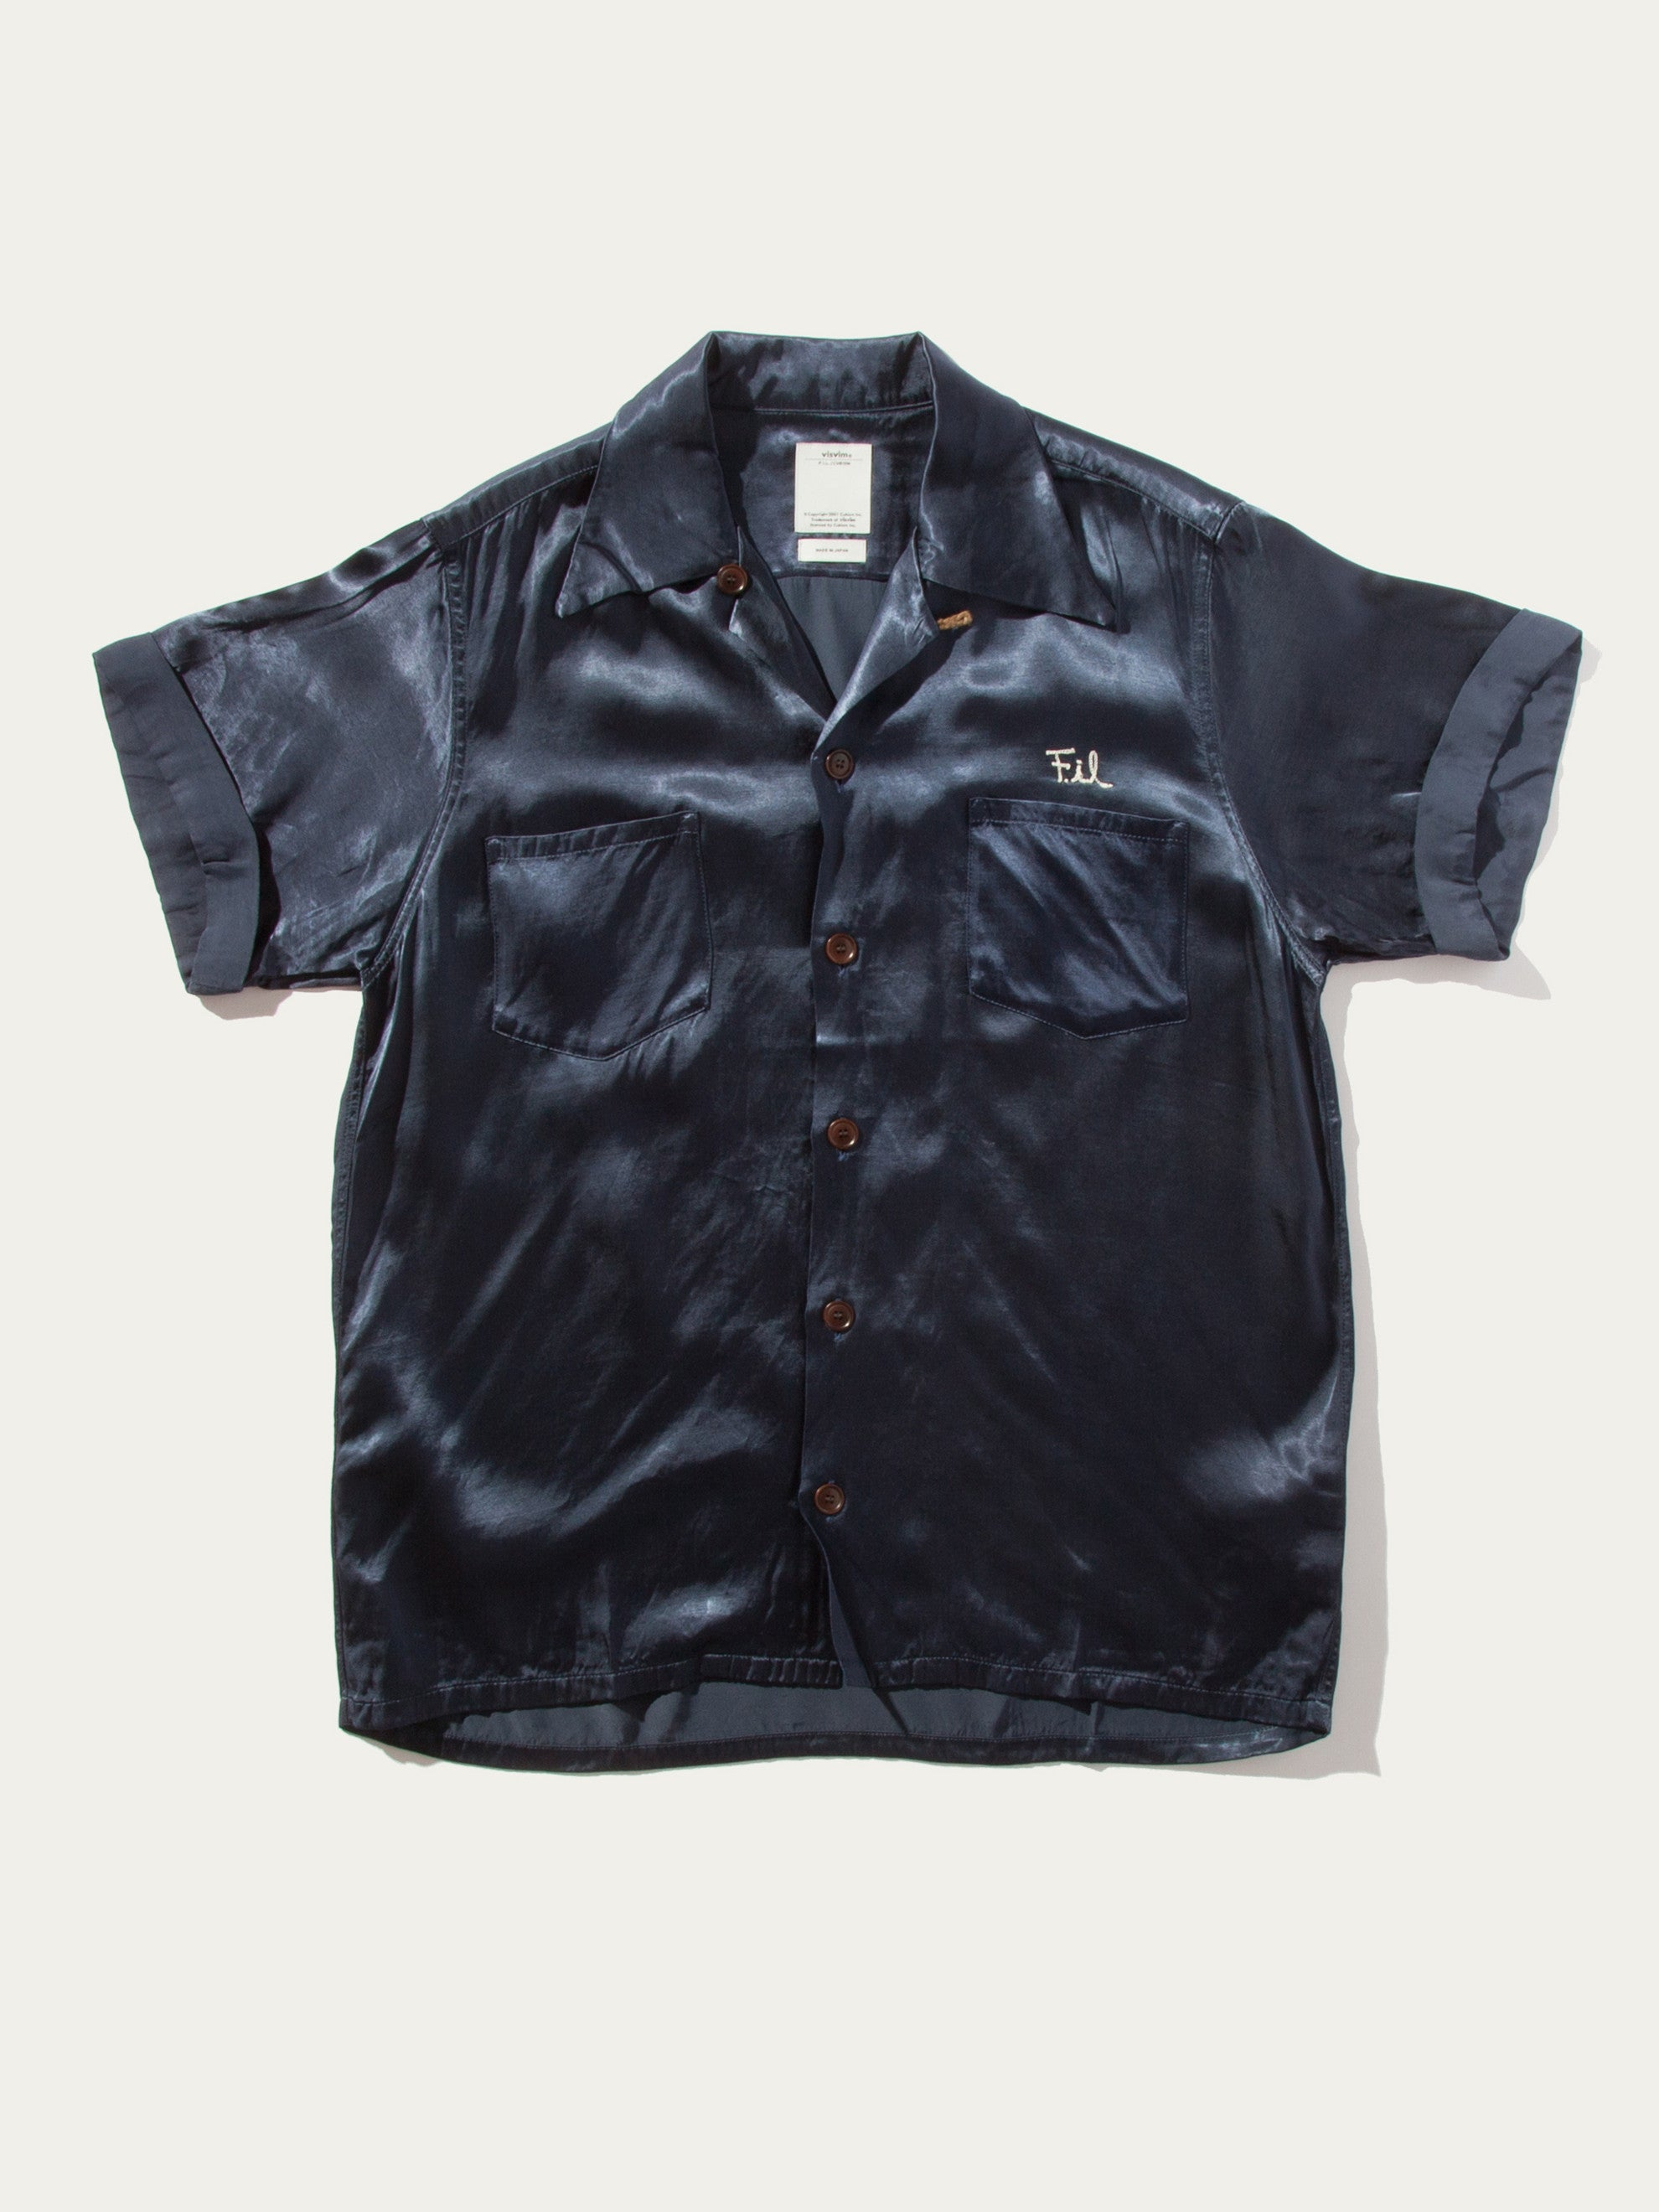 Navy Irving Shirt S/S Peerless 13